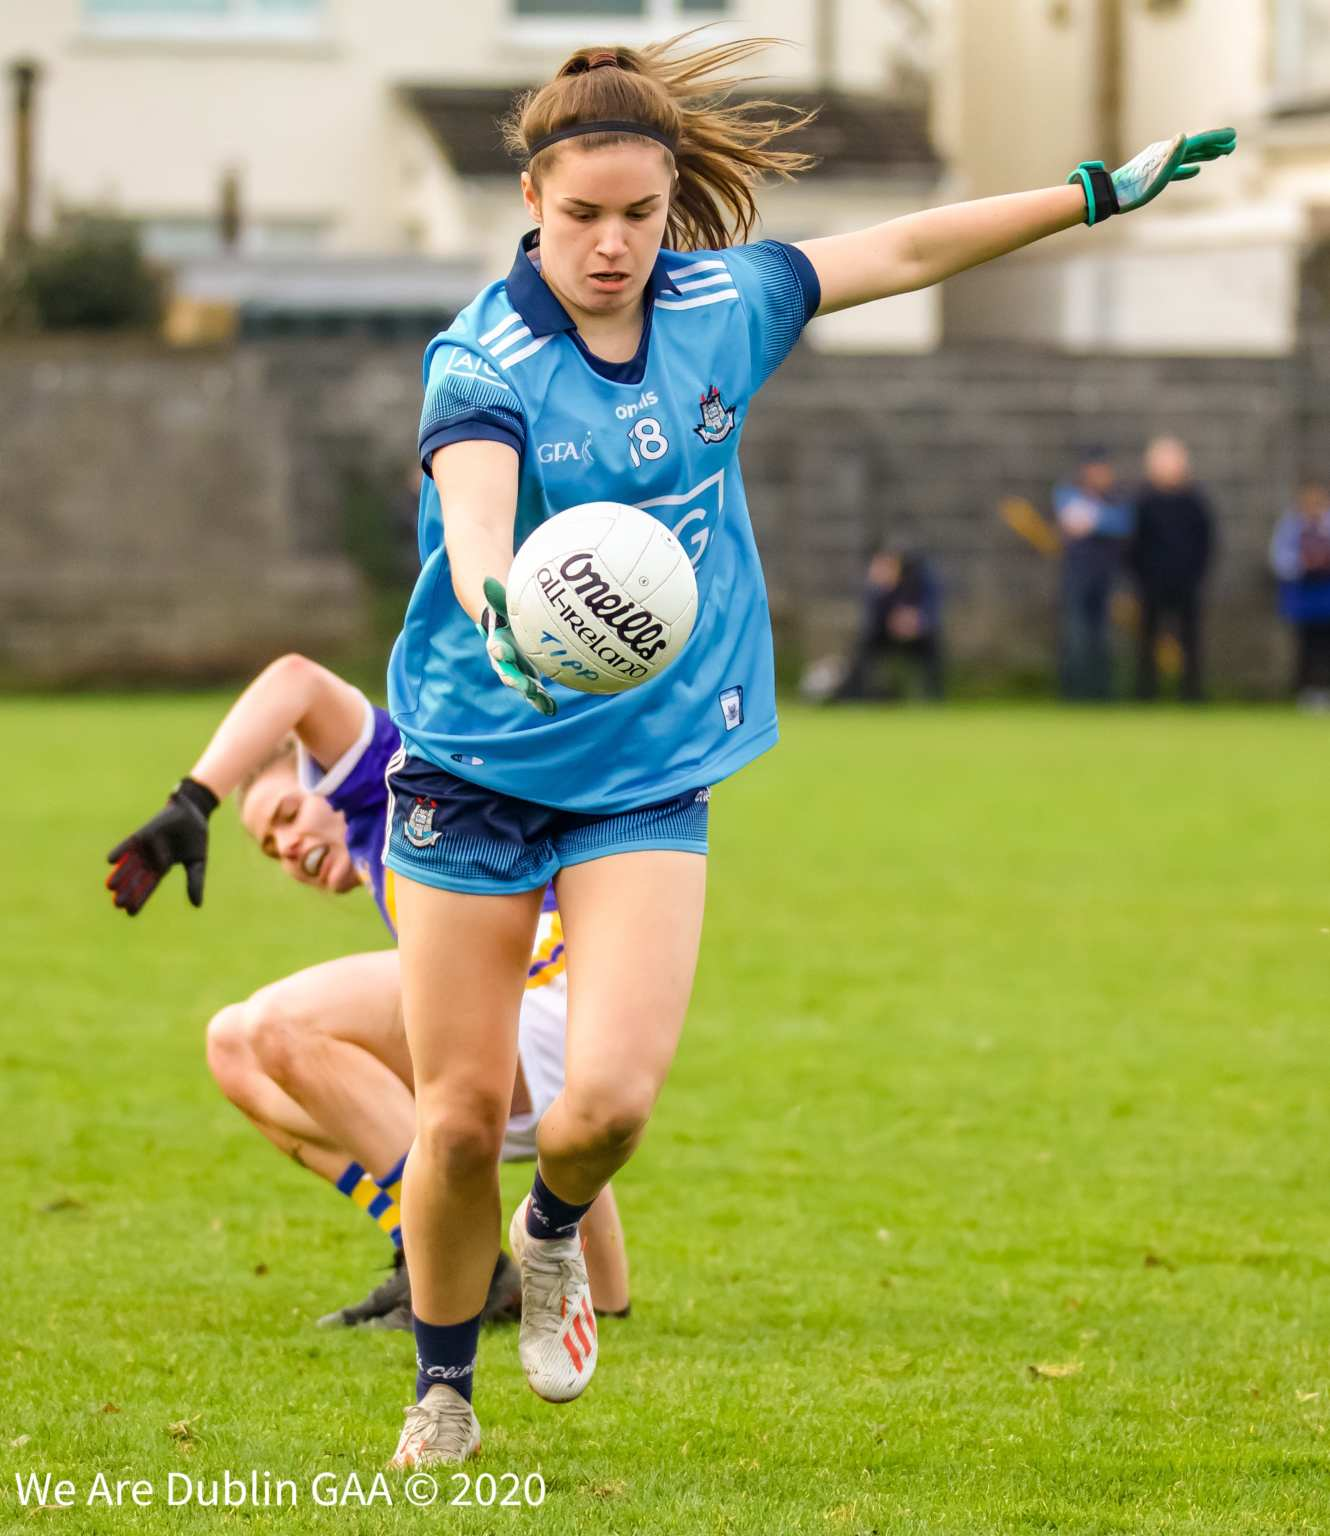 A Dublin ladies footballer just about to kick a shot at goal, Dublin get their 2020 leinster minor football championship underway this Friday evening against Meath.